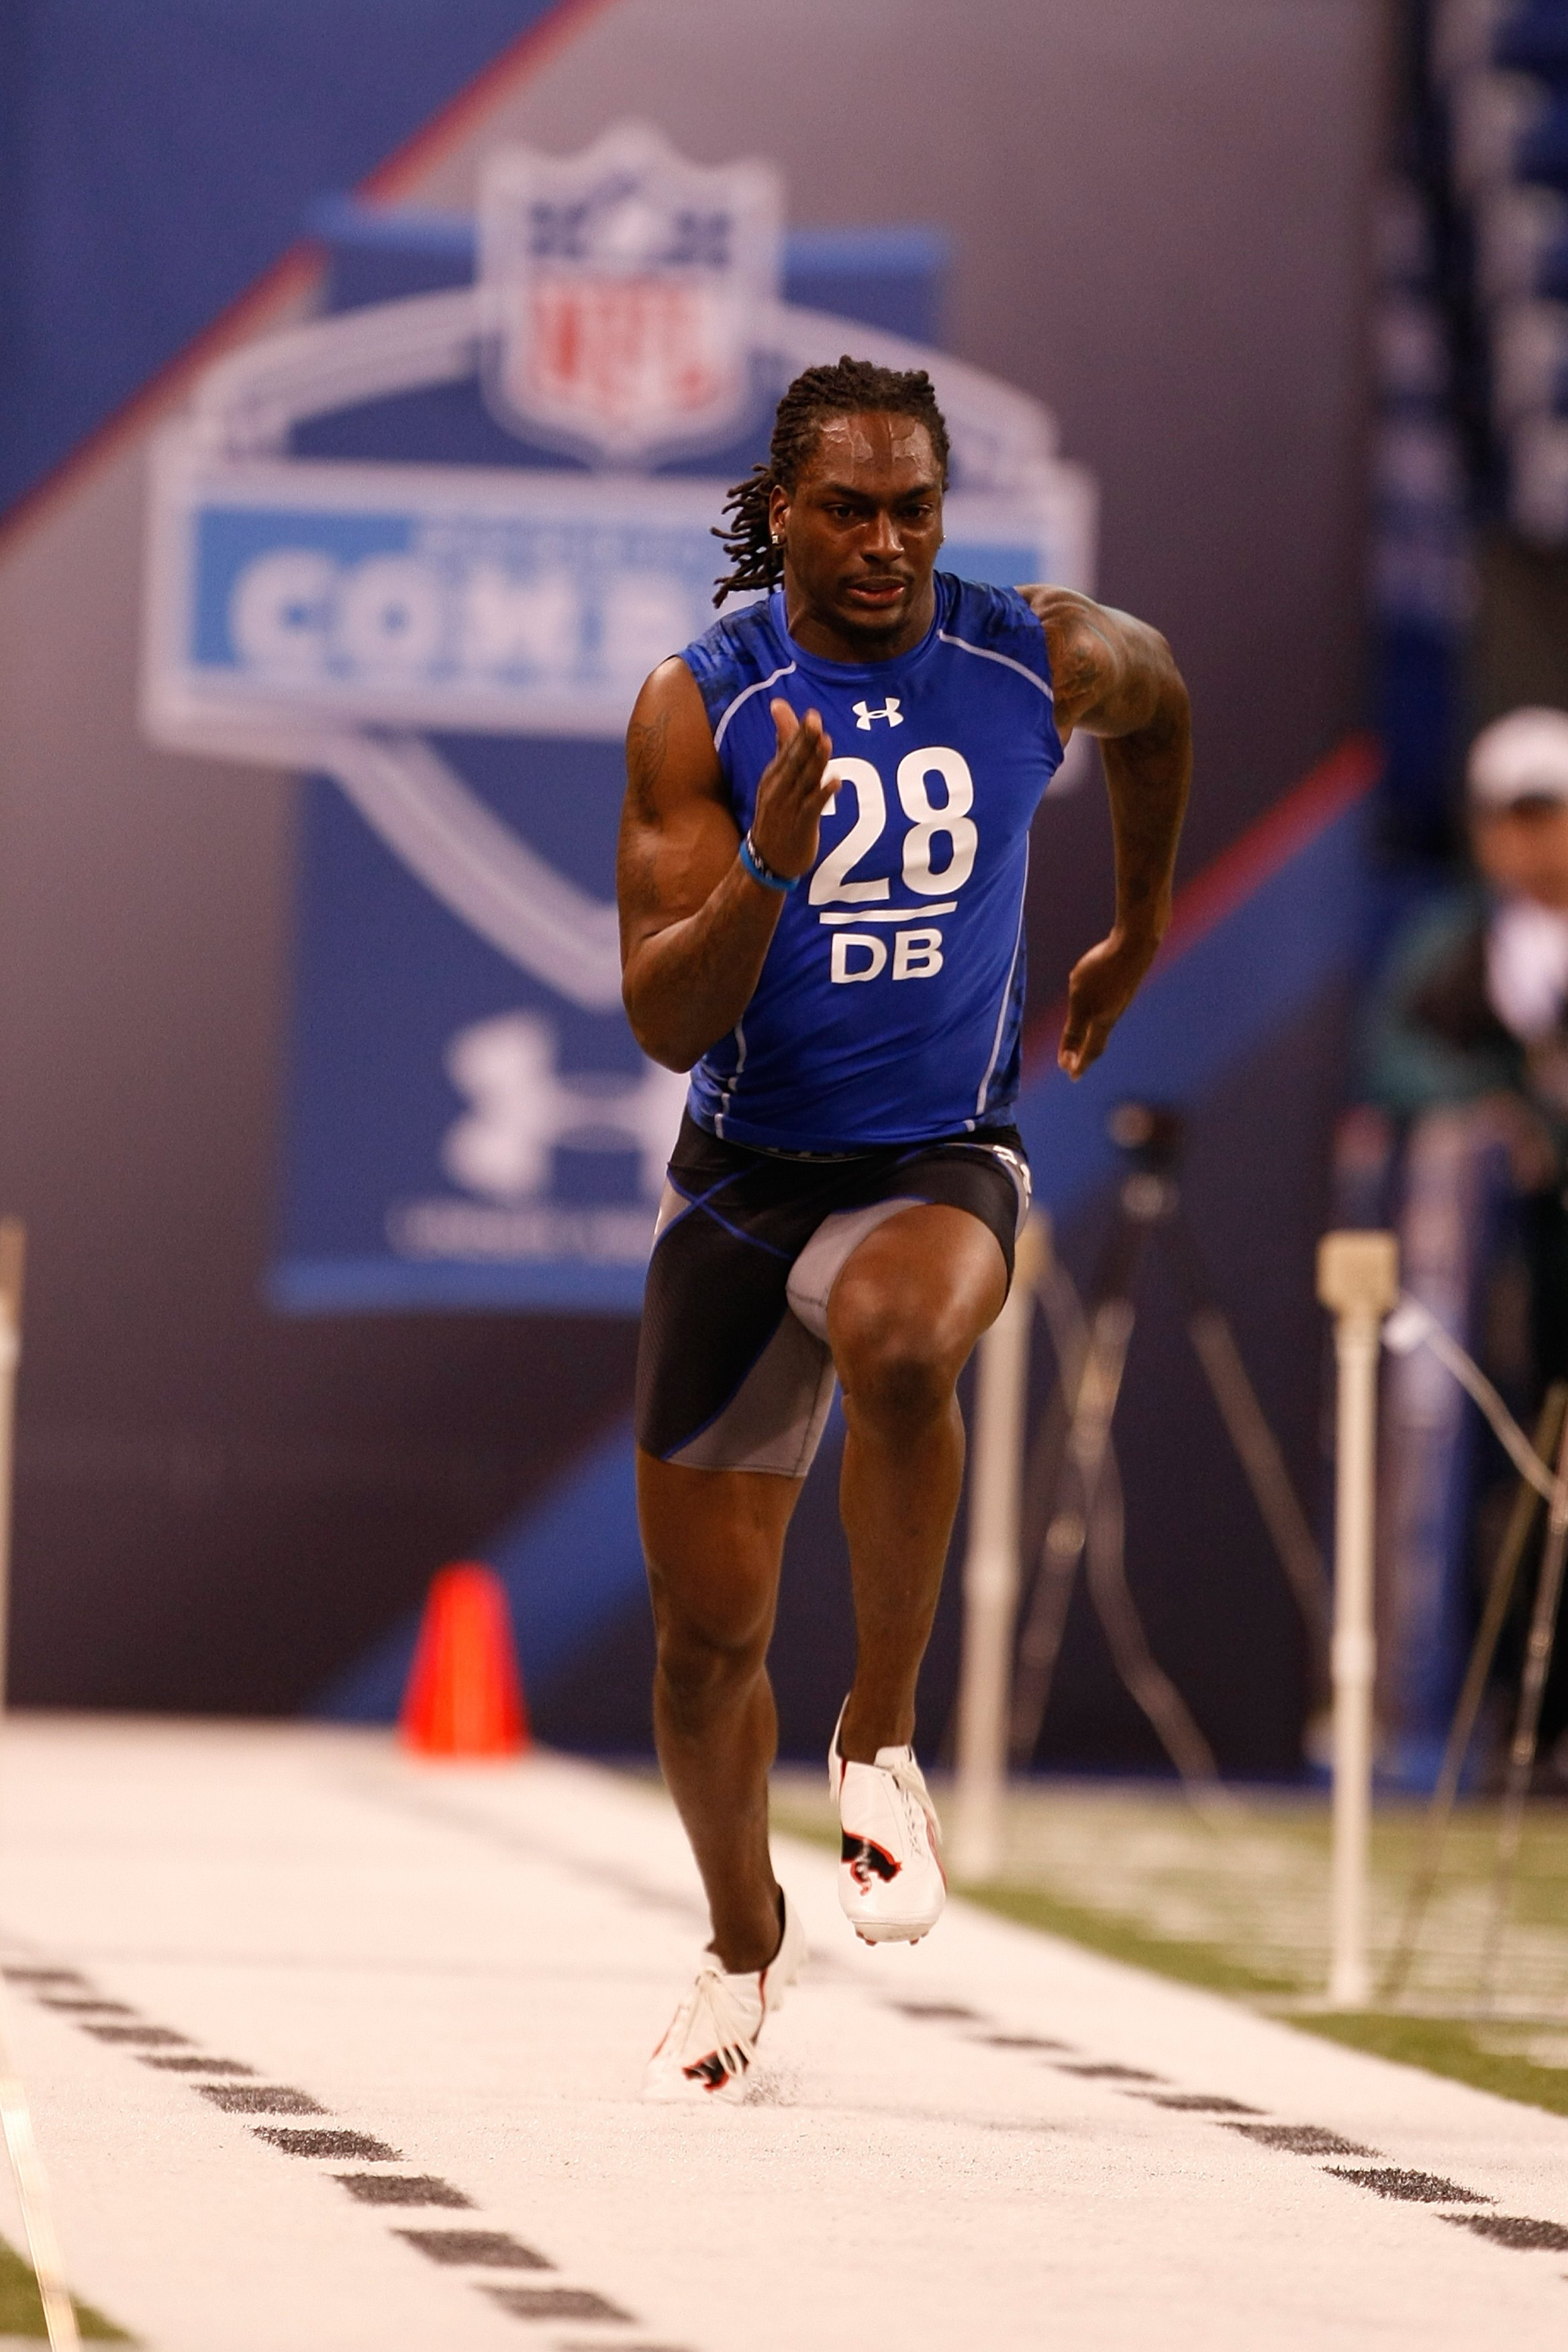 INDIANAPOLIS, IN - MARCH 2: Defensive back Myron Lewis of Vanderbilt runs the 40 yard dash during the NFL Scouting Combine presented by Under Armour at Lucas Oil Stadium on March 2, 2010 in Indianapolis, Indiana. (Photo by Scott Boehm/Getty Images)